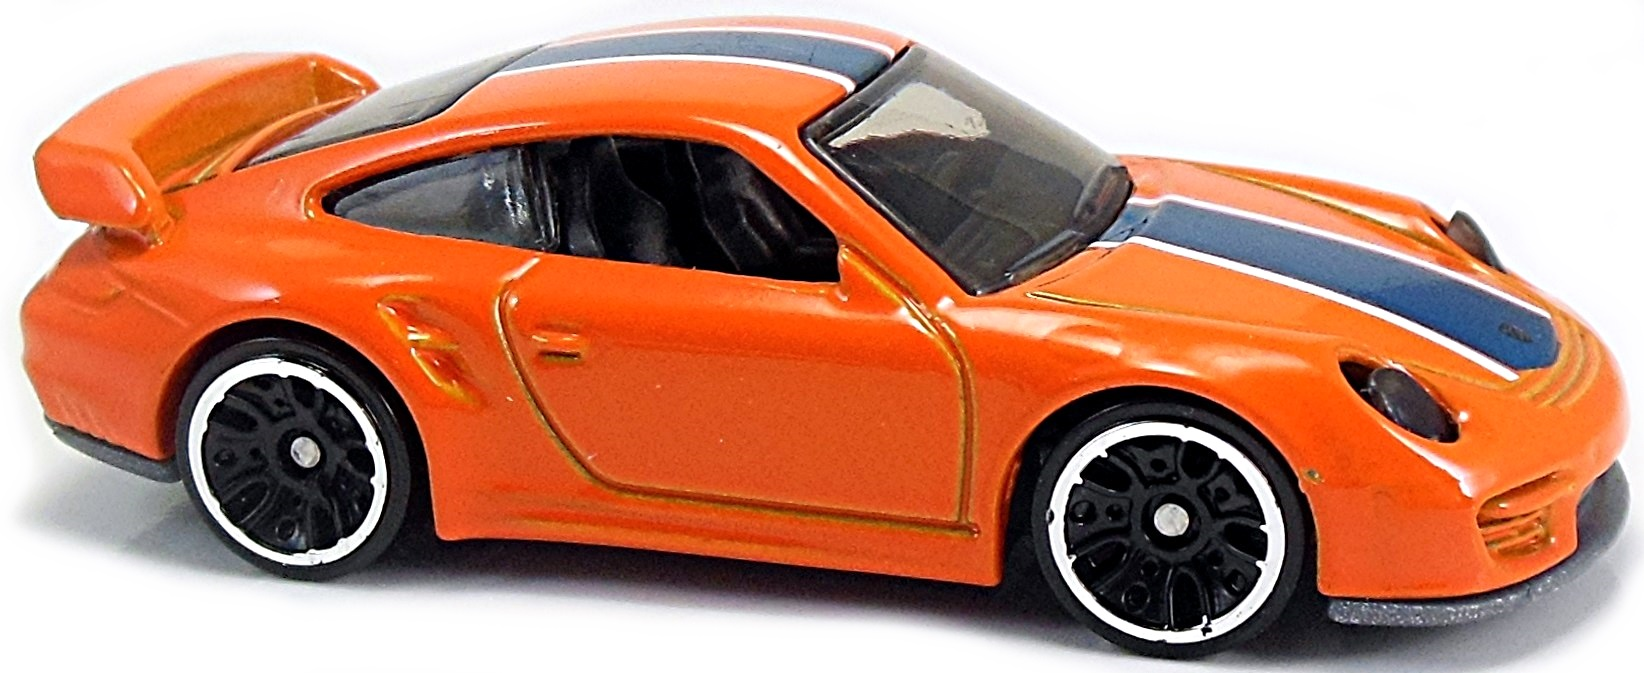 porsche 911 gt1 hot wheels hot wheels 2002 collector series porsche 911 gt1 98 orange hot. Black Bedroom Furniture Sets. Home Design Ideas